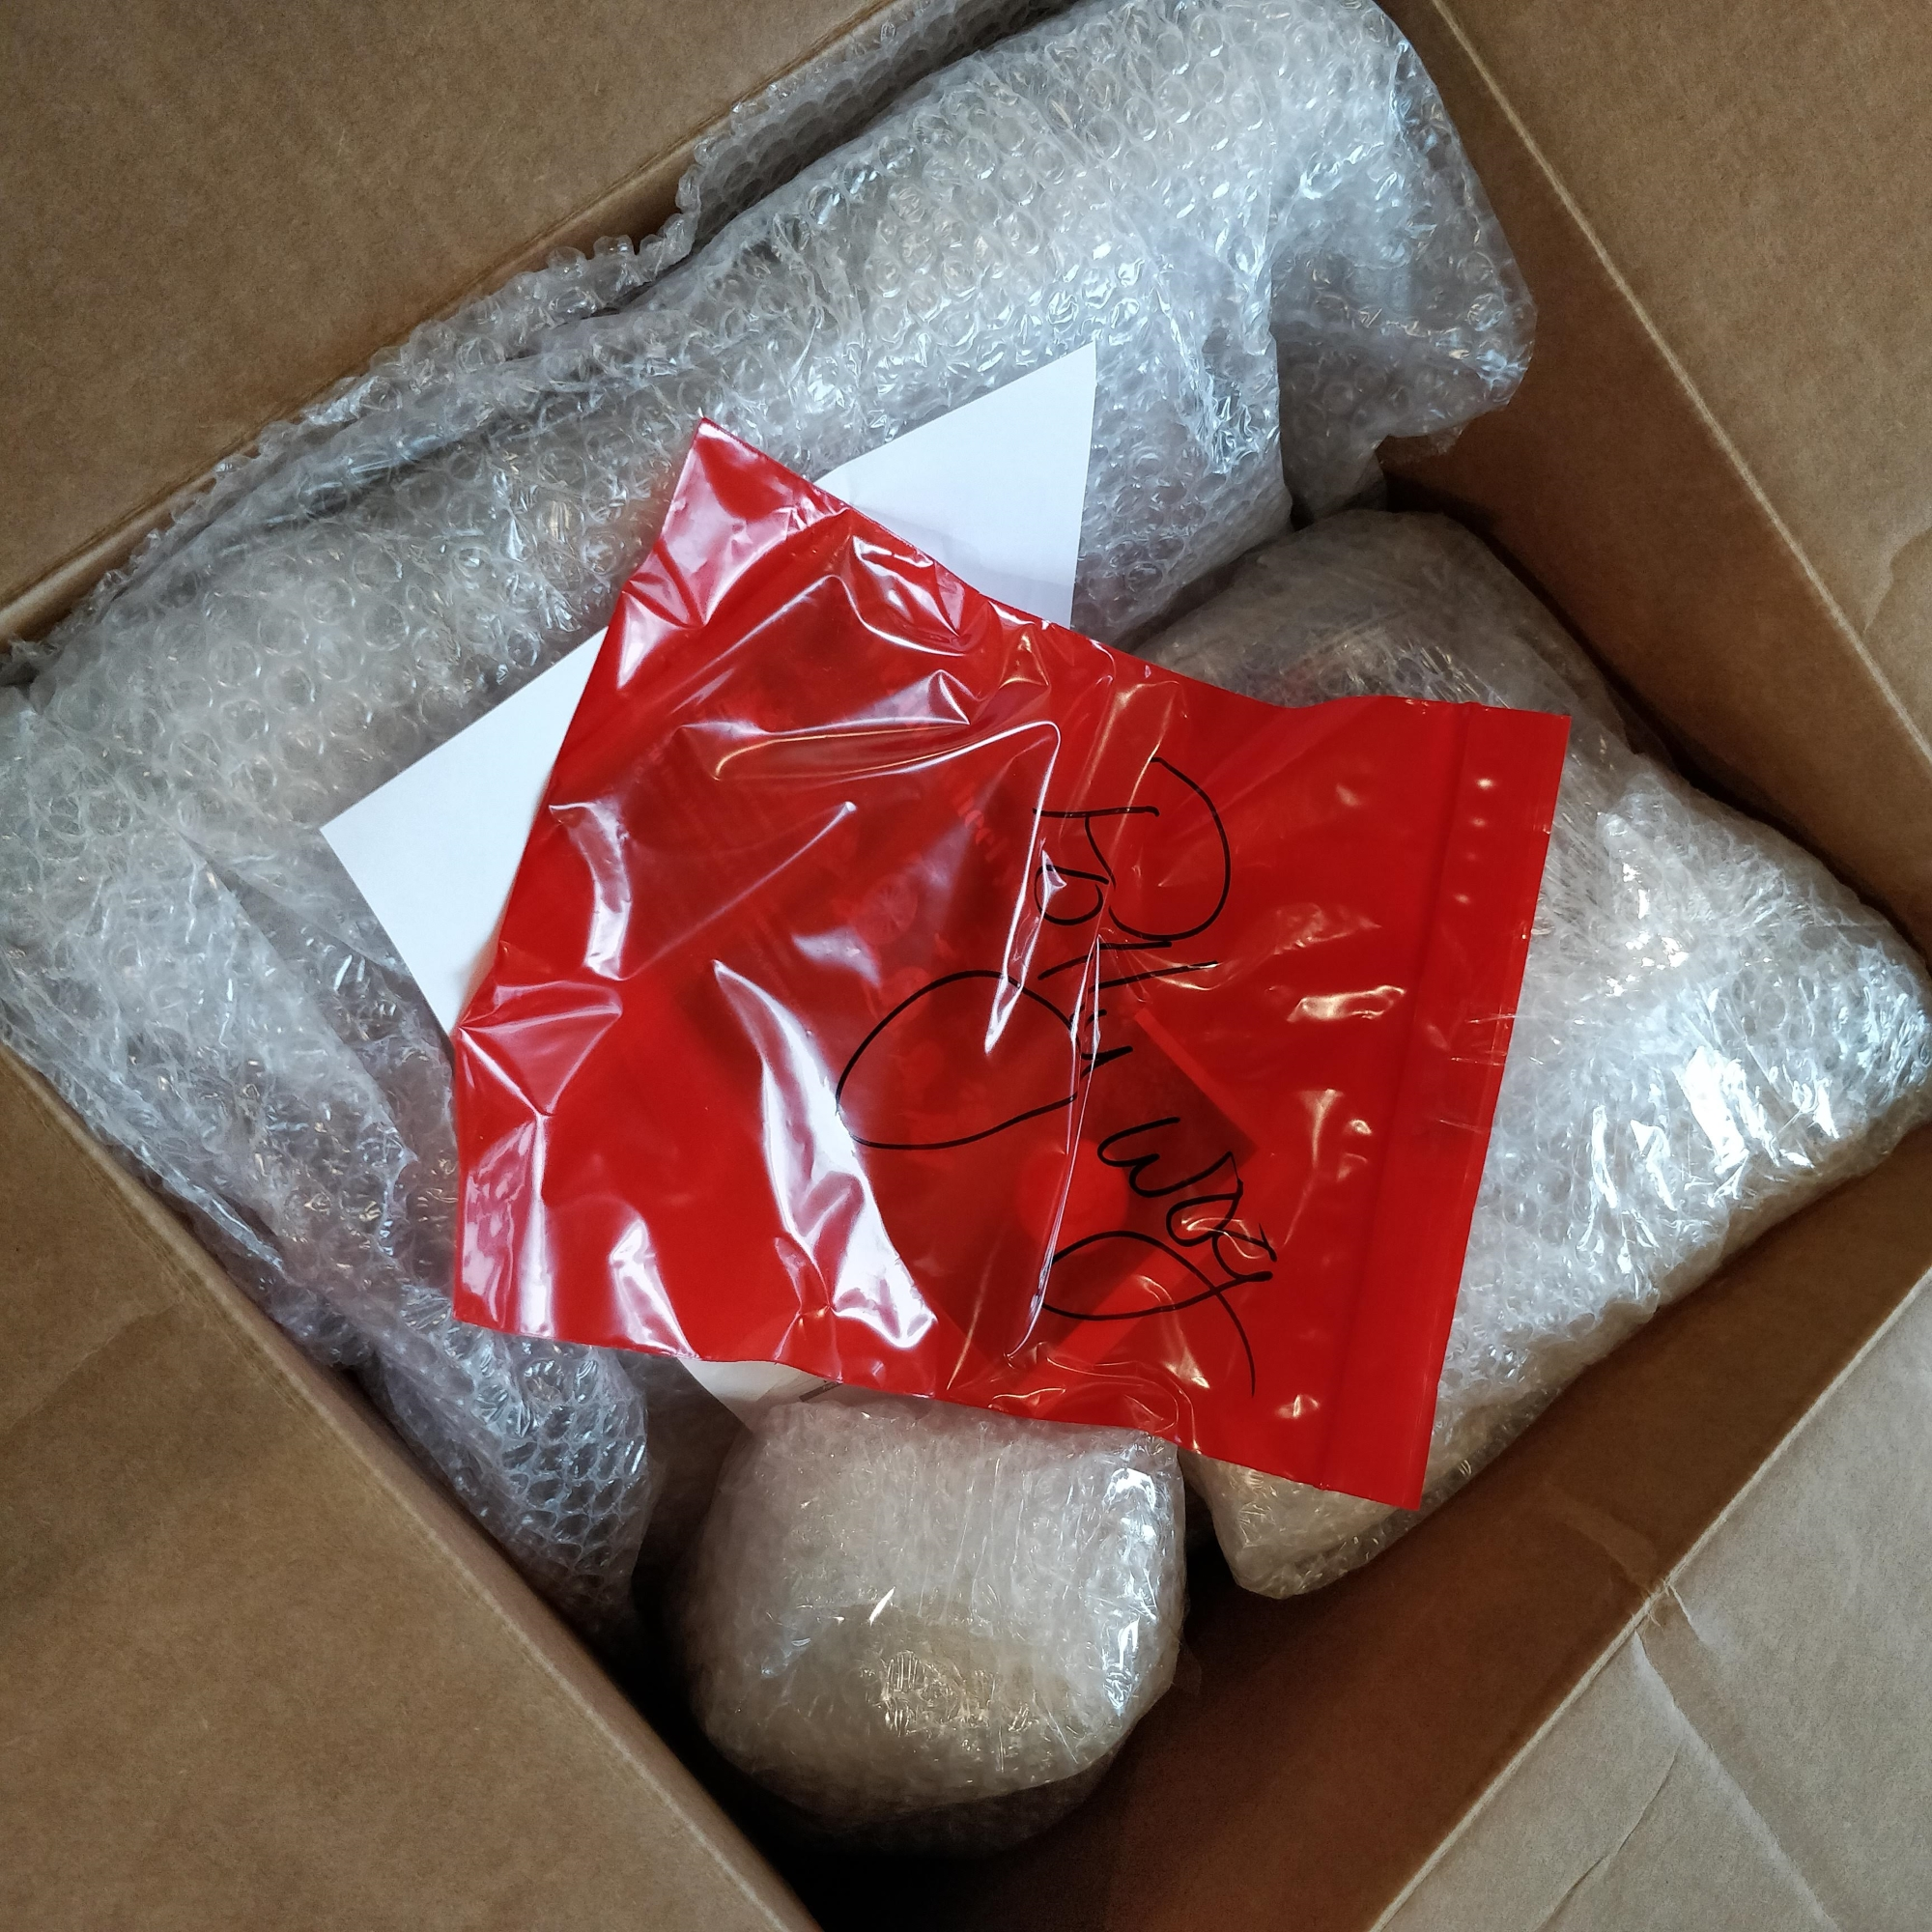 """Looking into a cardboard box. There are several bubble-wrapped items and a red plastic bag, on which """"Pollywog"""" is written in black marker"""